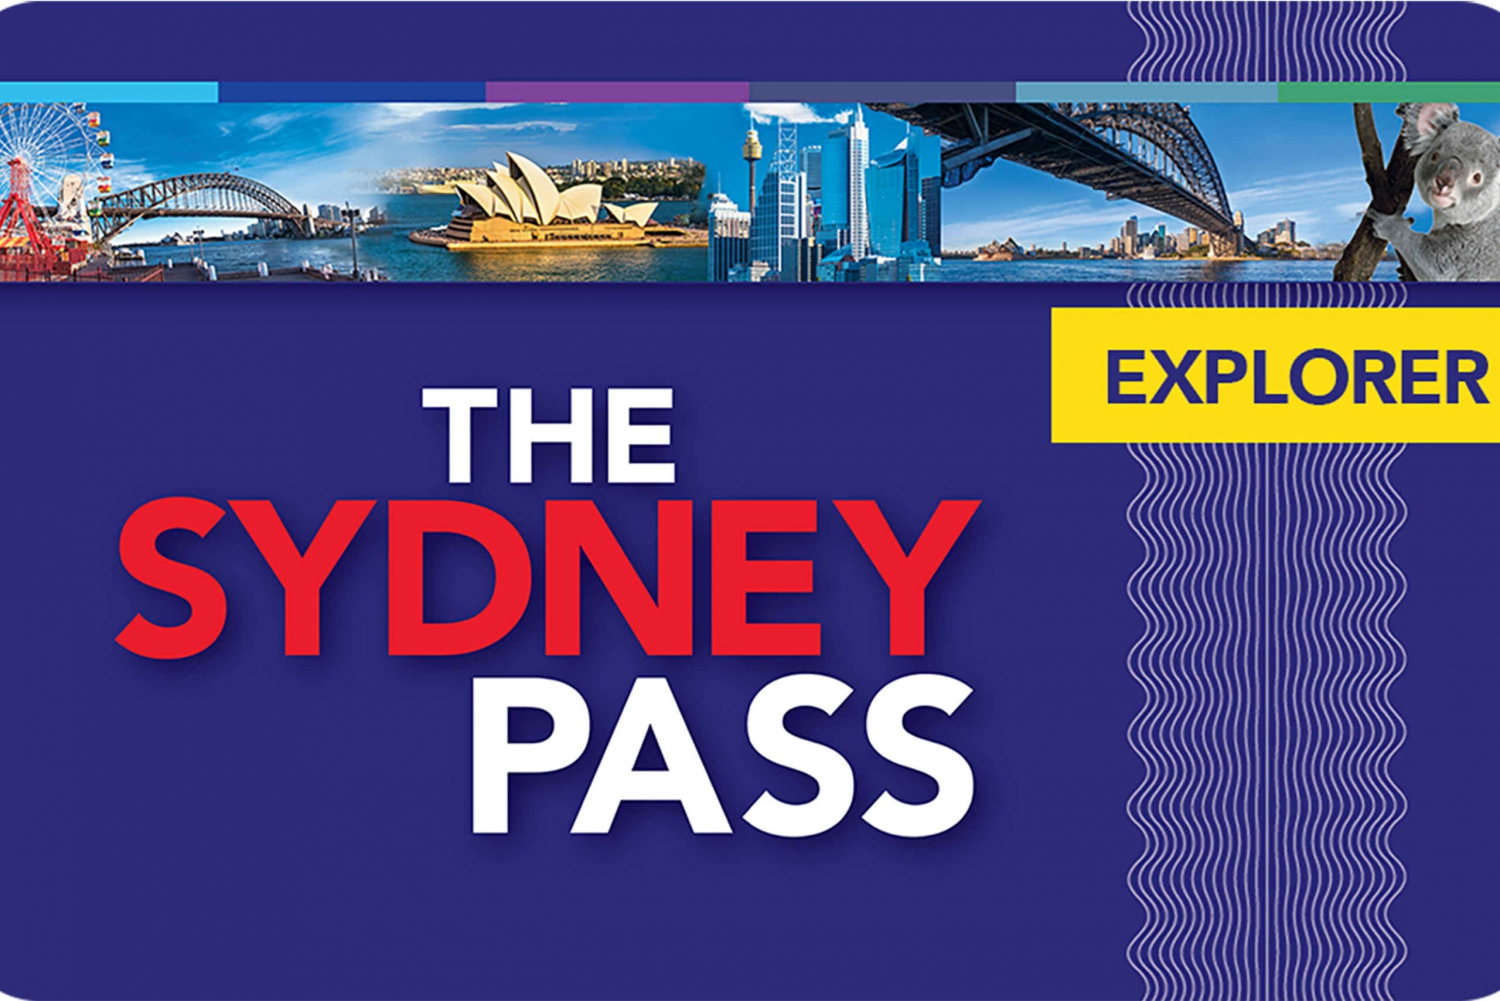 Sydney Explorer Pass: Save Money at Sydney's Attractions